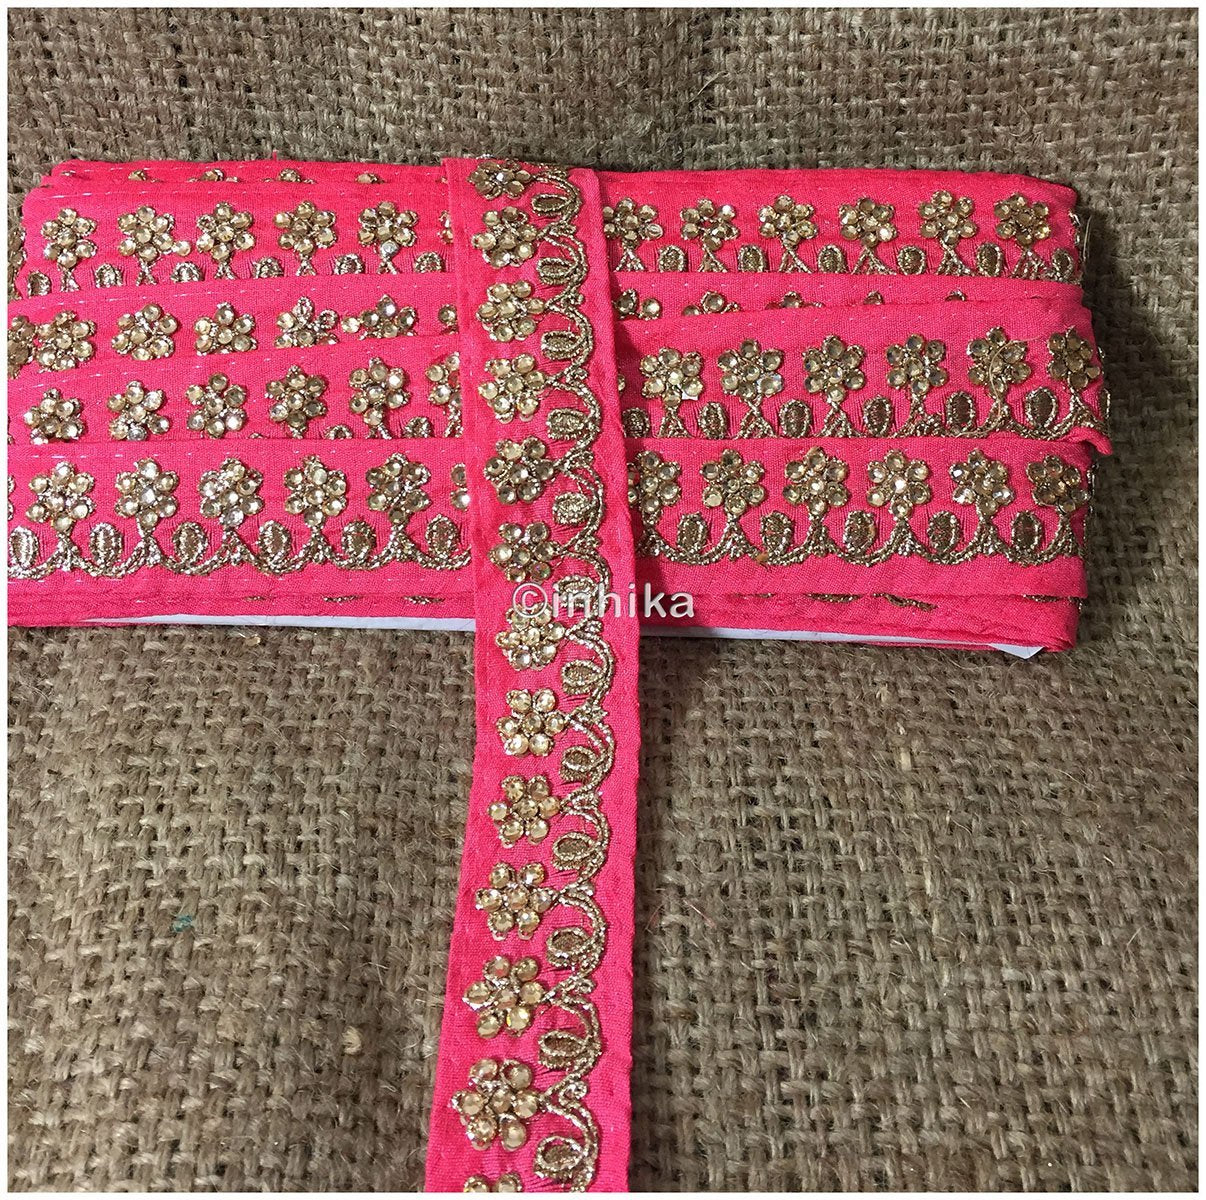 lace trim fabric online saree lace border patterns design with price Peach, Embroidery, Stone, 2 Inch Wide material Cotton Mix